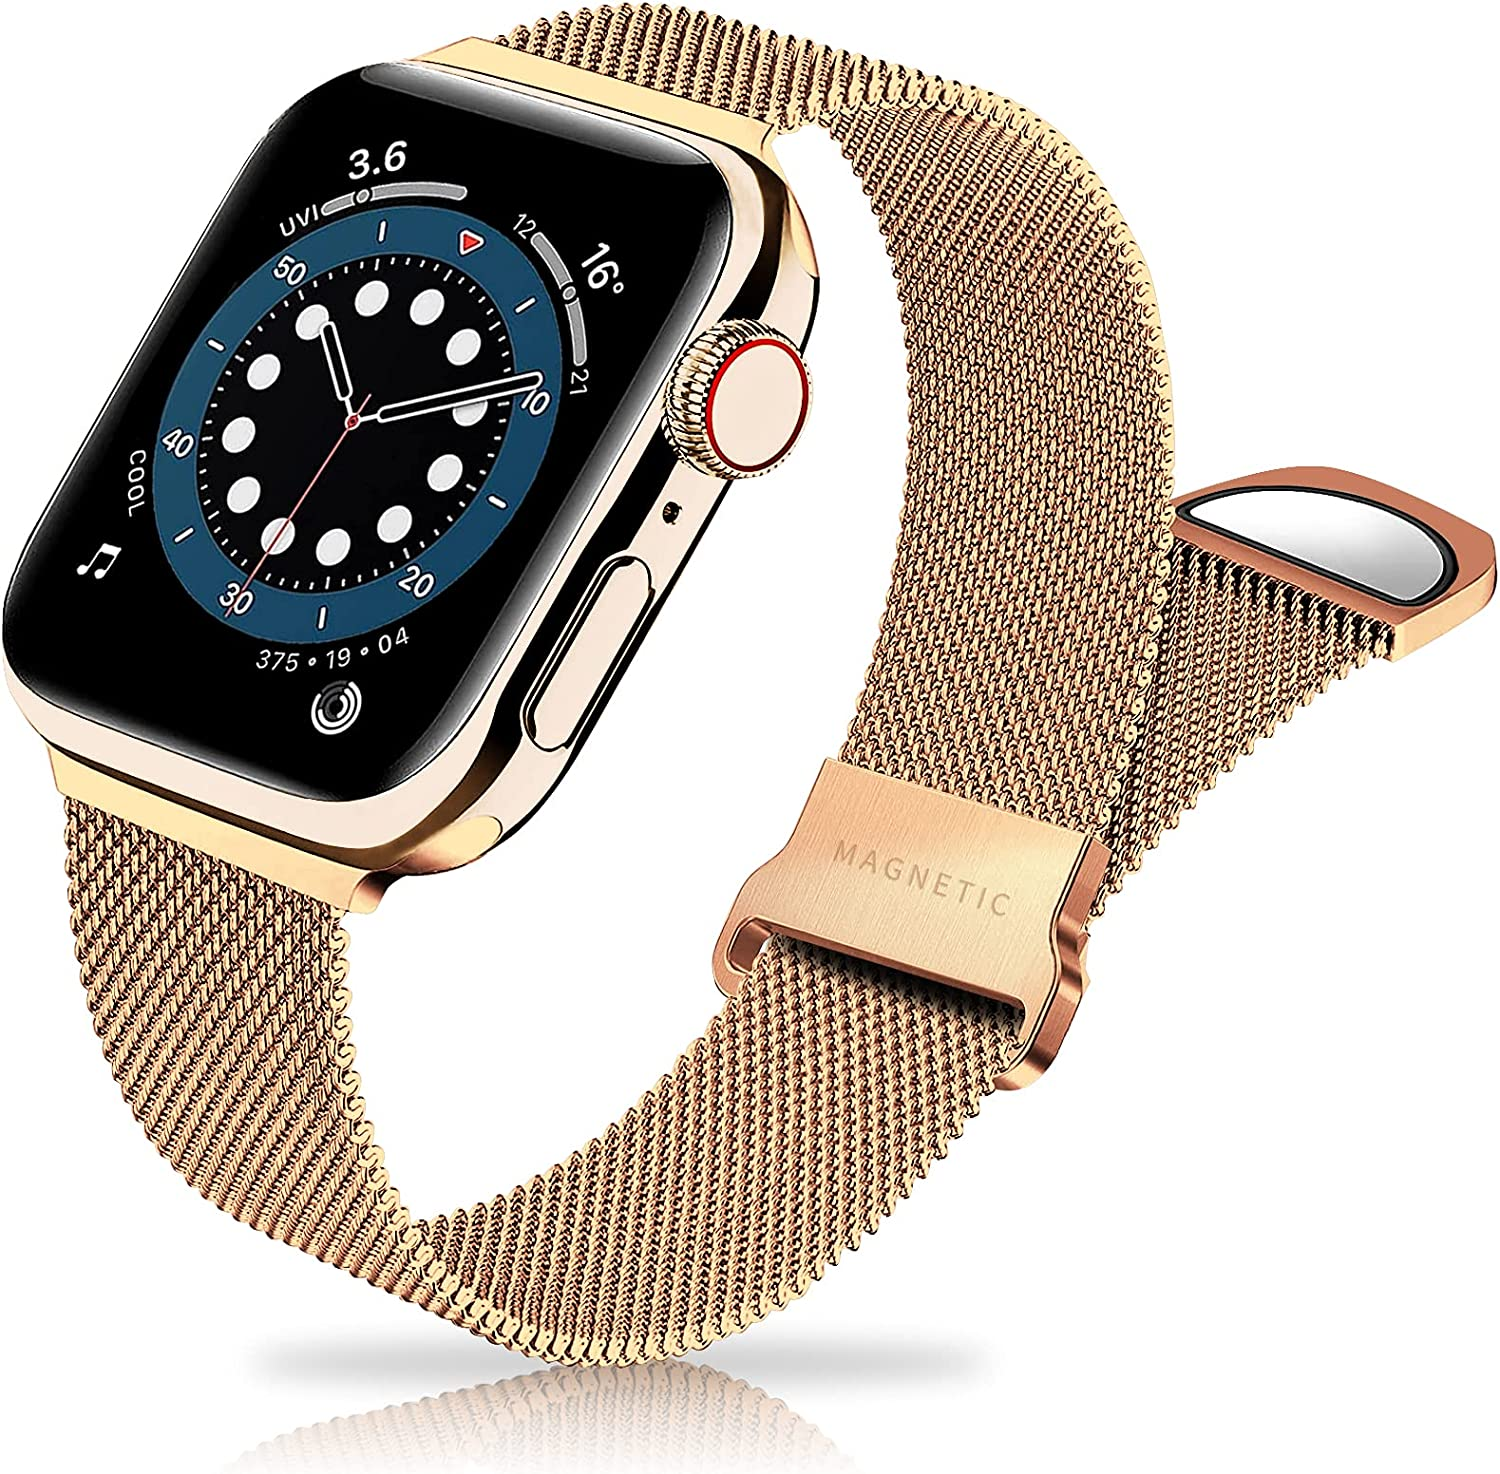 Metal Band Stainless Steel Mesh Magnetic Compatible with Apple Watch Bands 38mm 40mm 41mm 42mm 44mm 45mm, Milanese Sport Clasp Loop Women Men Compatible for iWatch Series 7/SE/6/5/4/3/2/1